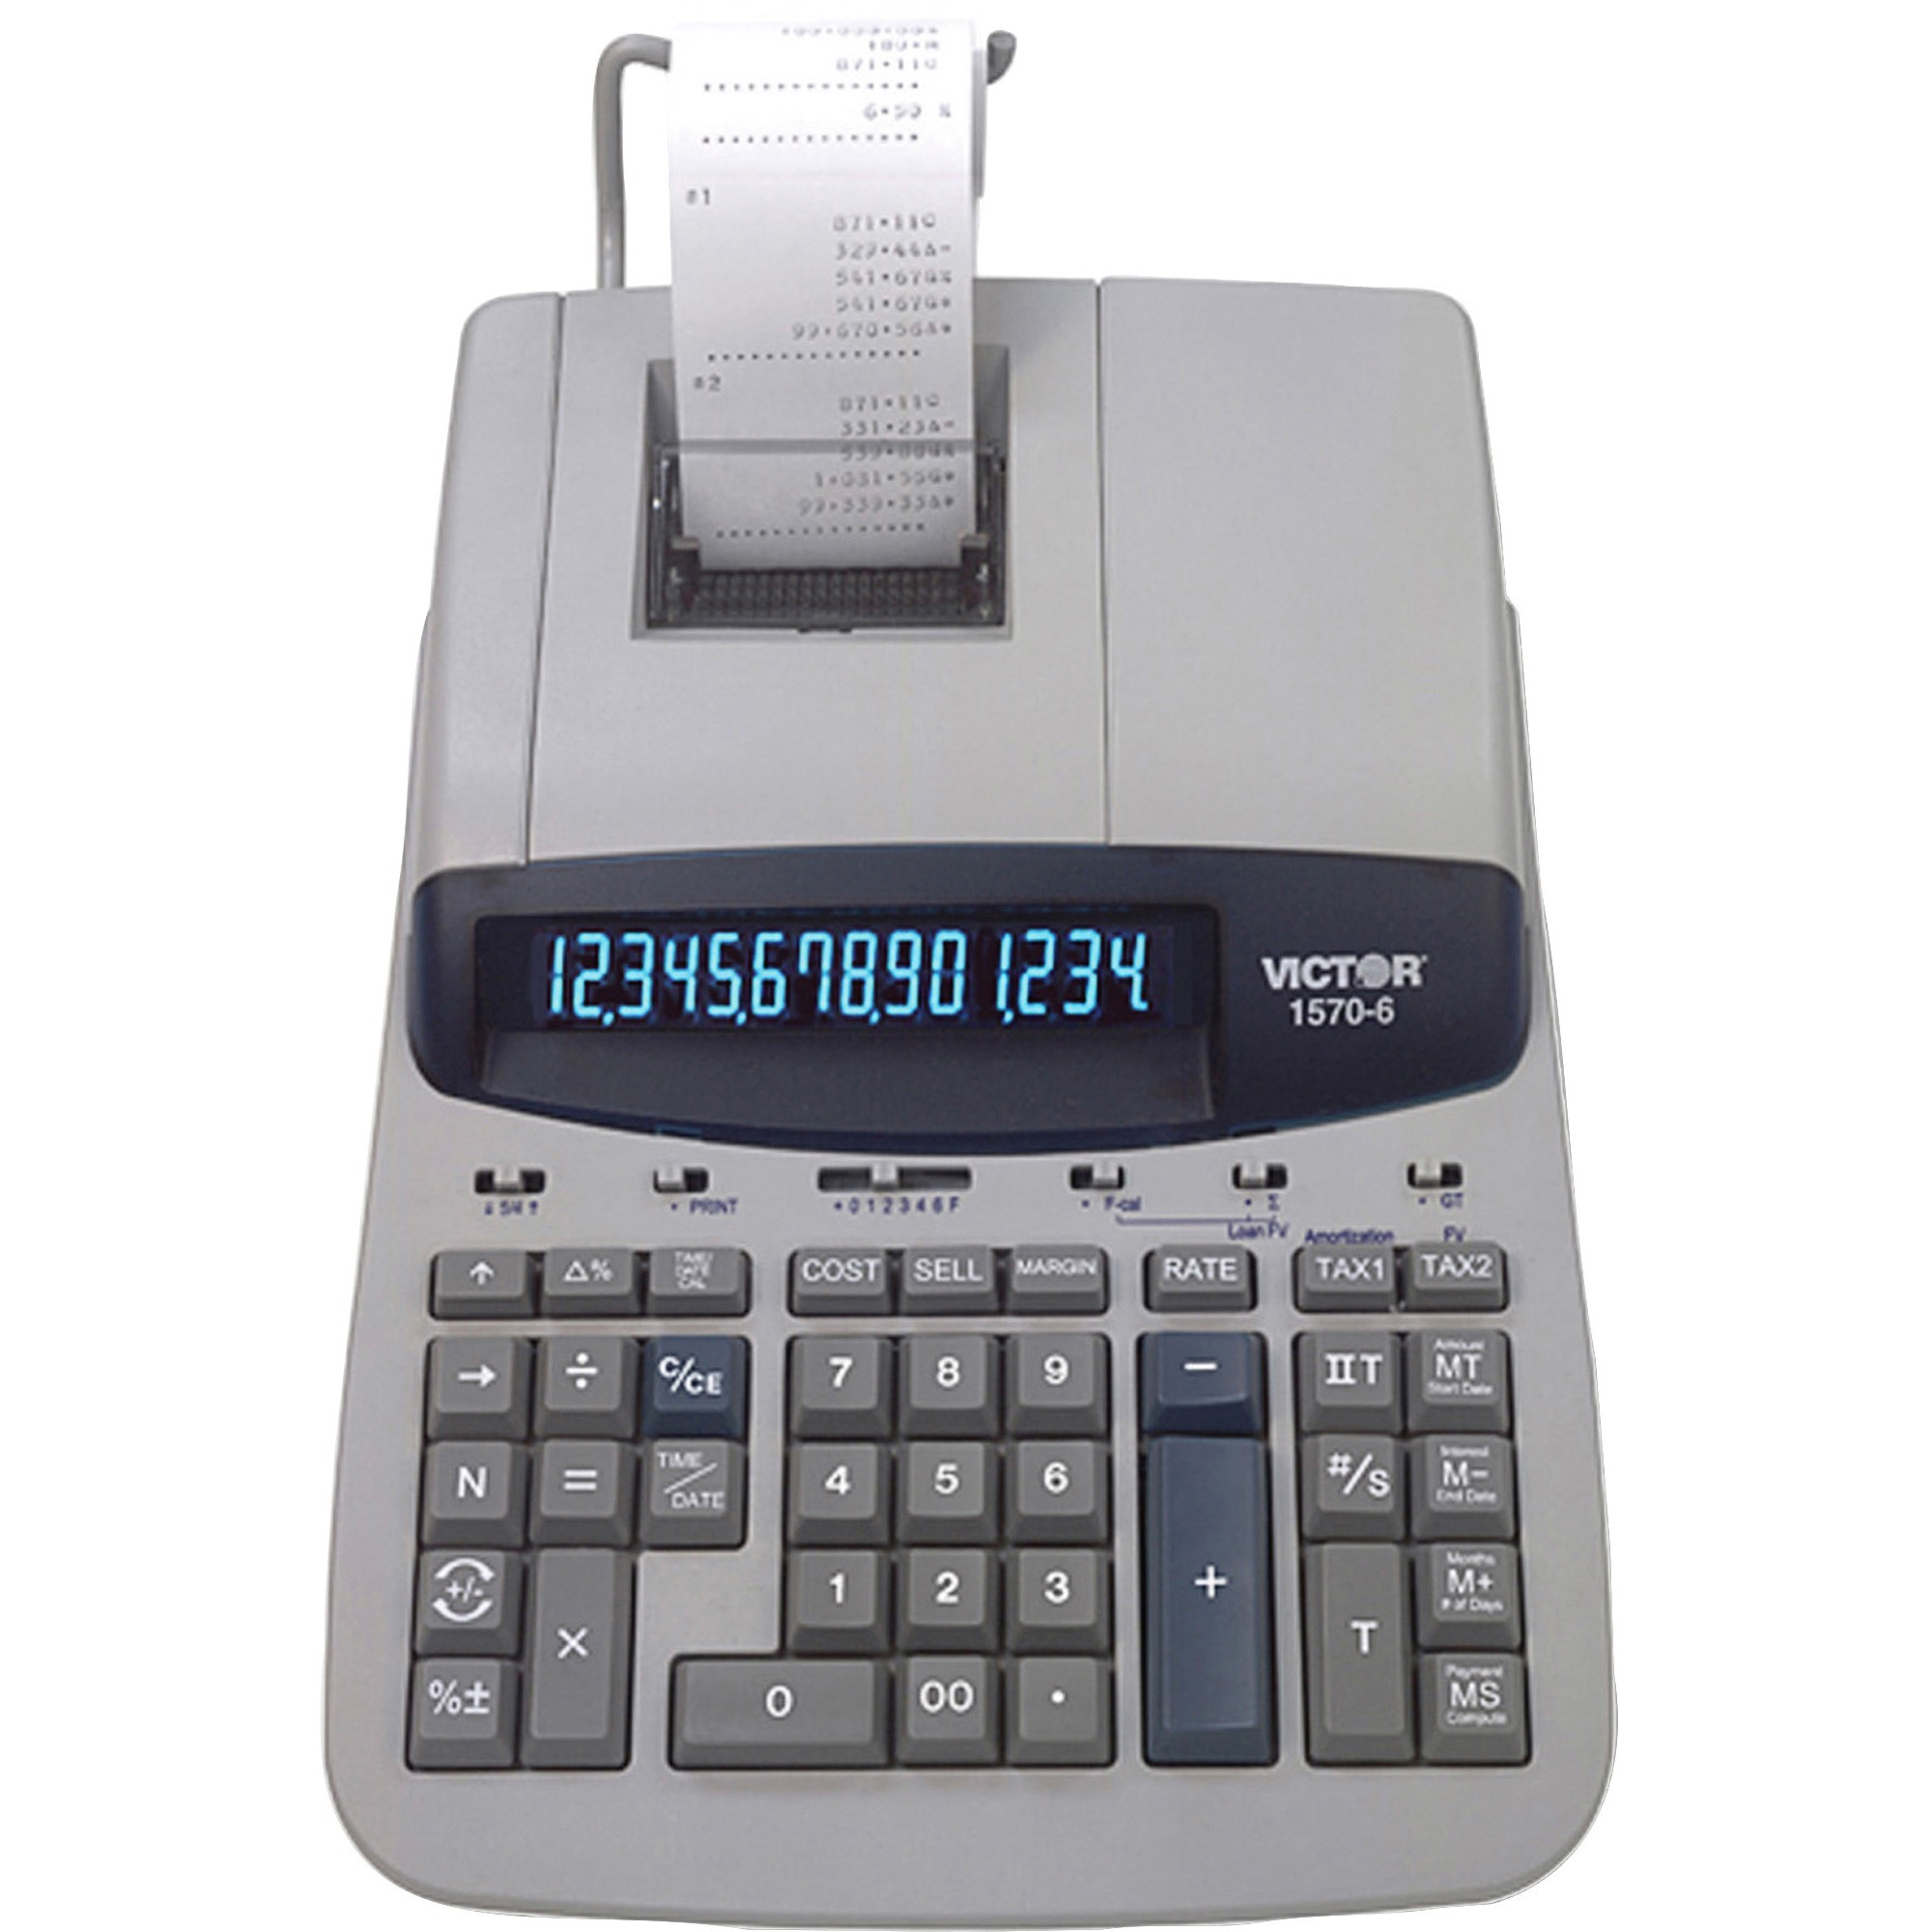 Victor 1570-6 14 Digit Professional Grade Heavy Duty Commercial Printing Calculator, Gray, Off White, 1 Each... by Victor Technology, LLC